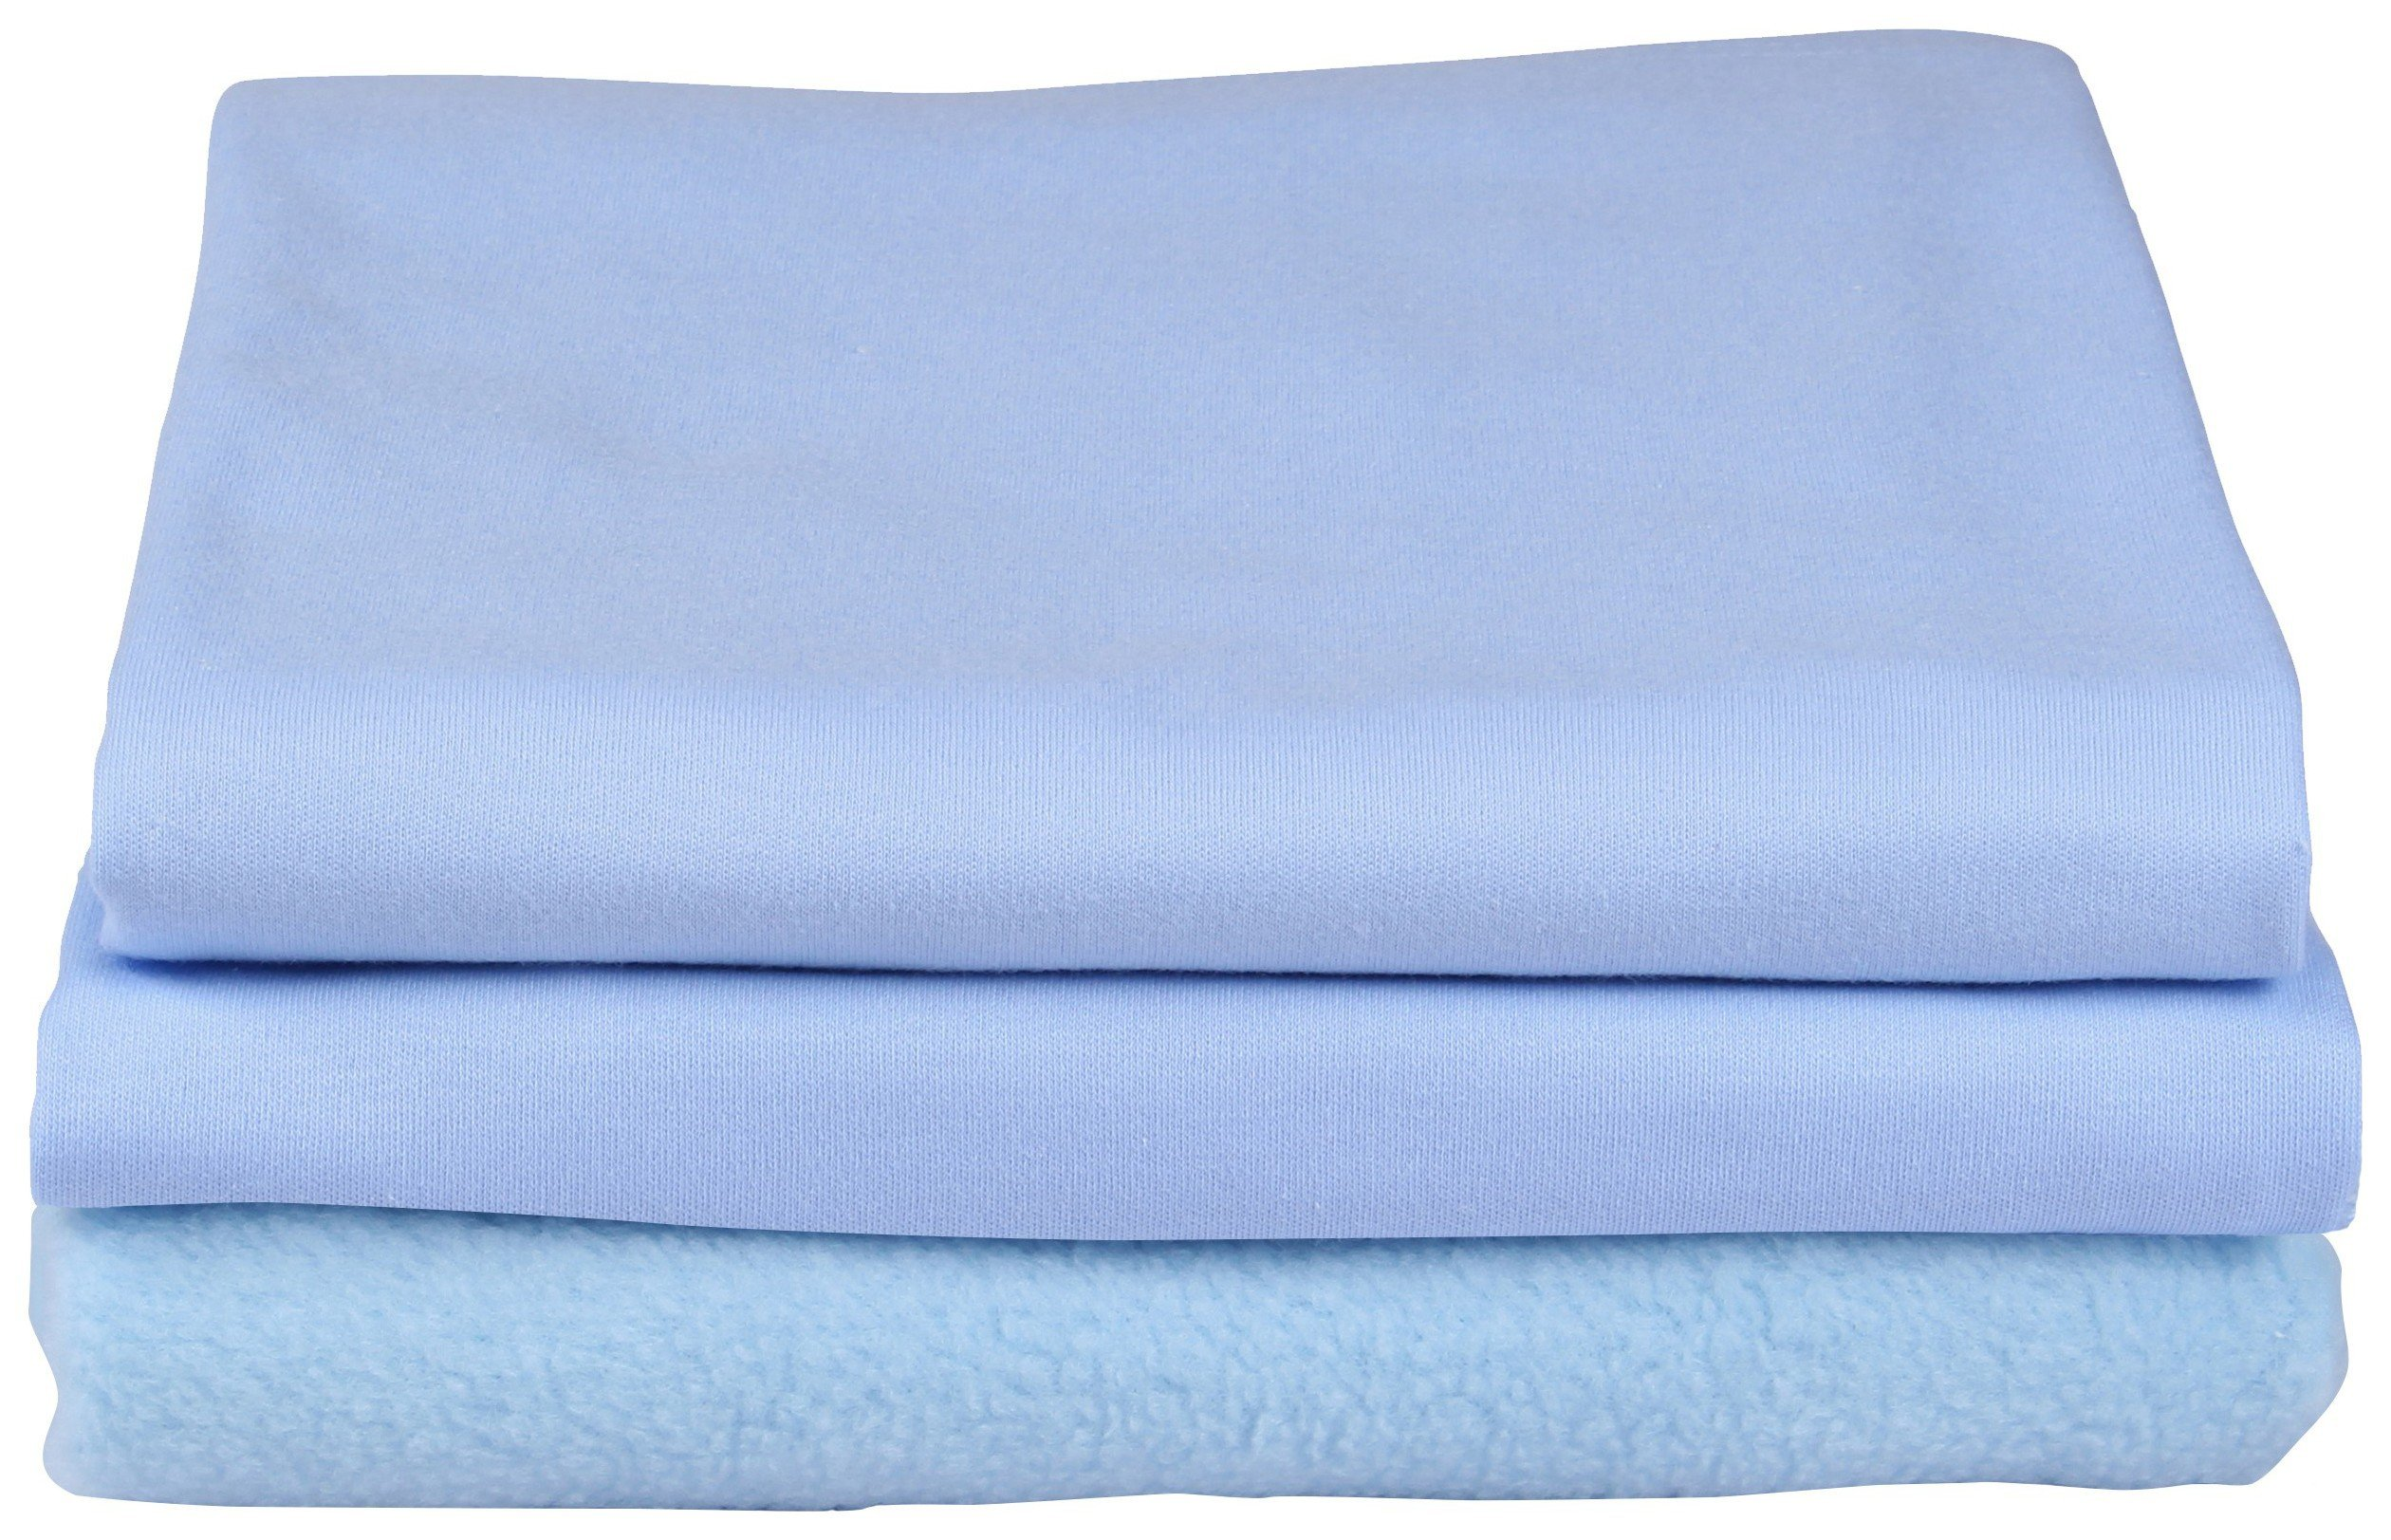 clair de lune cot and cot bed bedding bale  blue